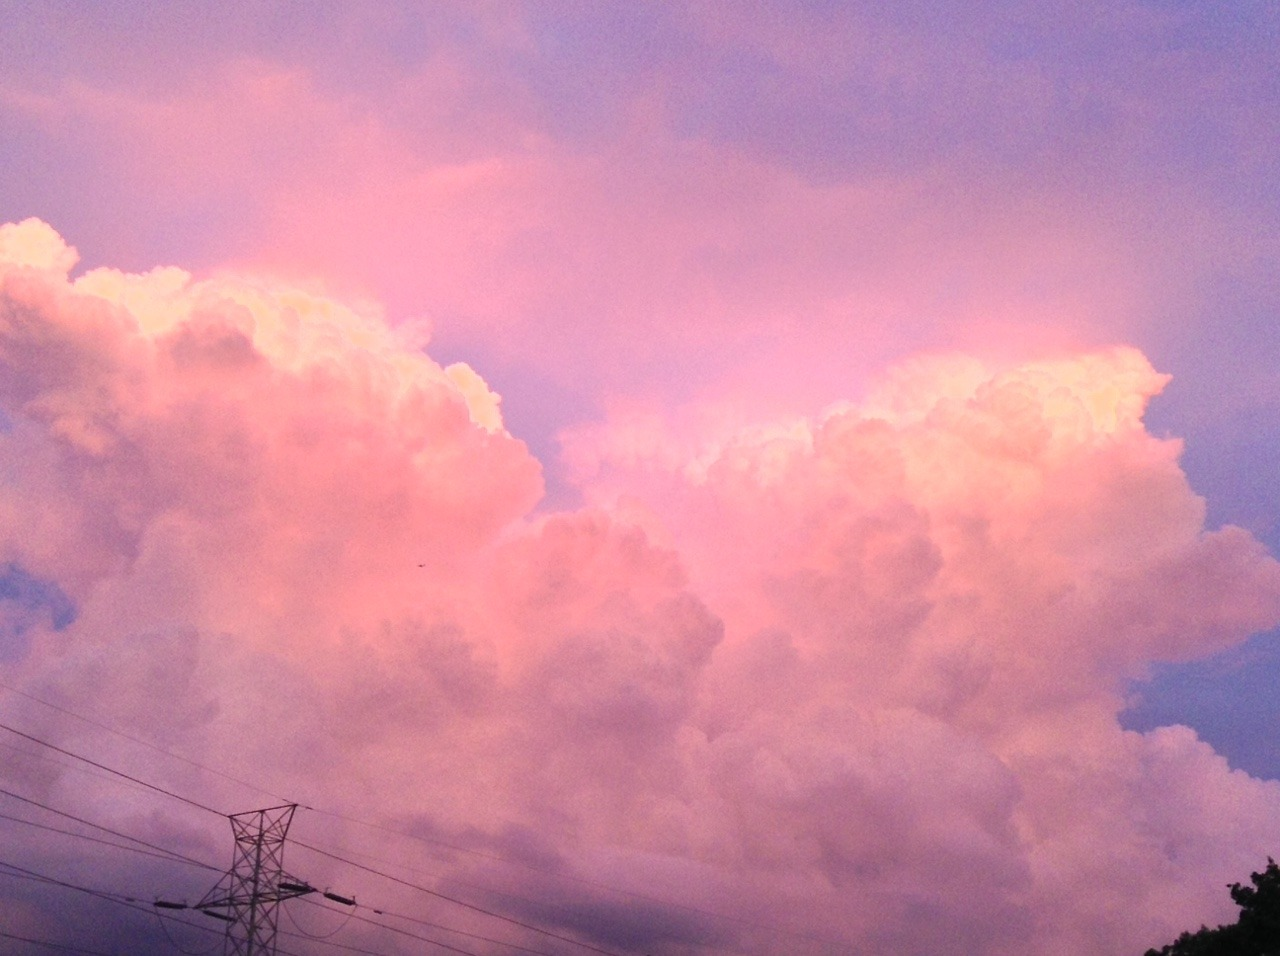 1920x1080 Fall Urban Wallpaper White Aesthetic Tumblr Clouds Pictures To Pin On Pinterest